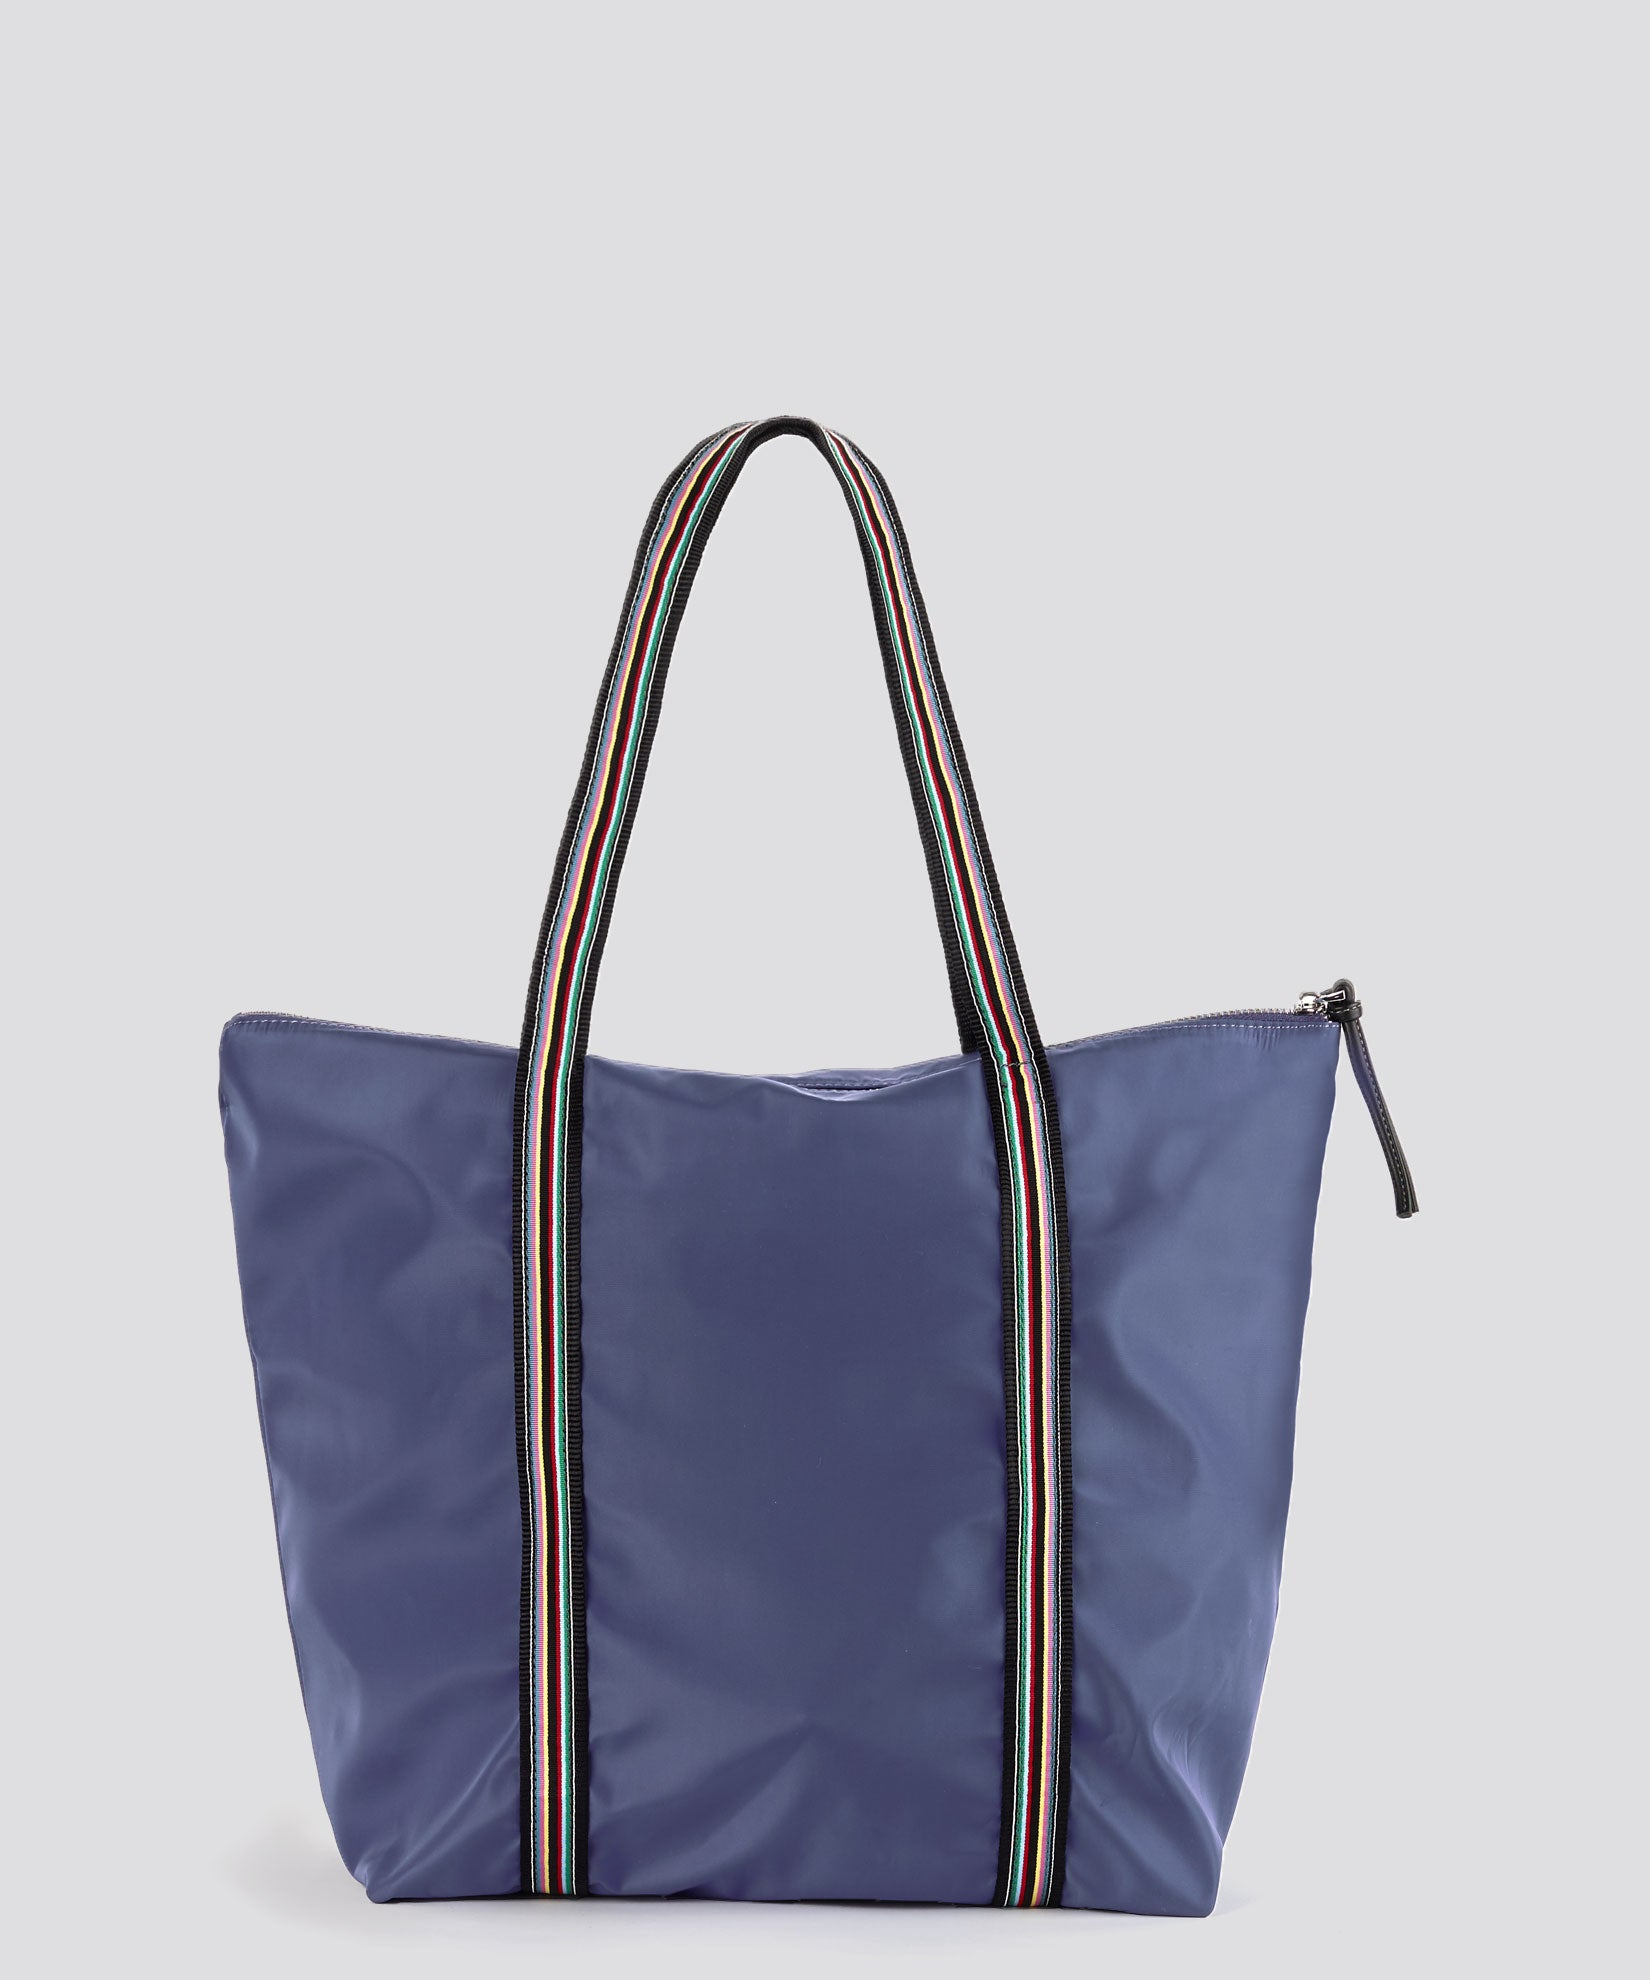 Chambray - London Tote